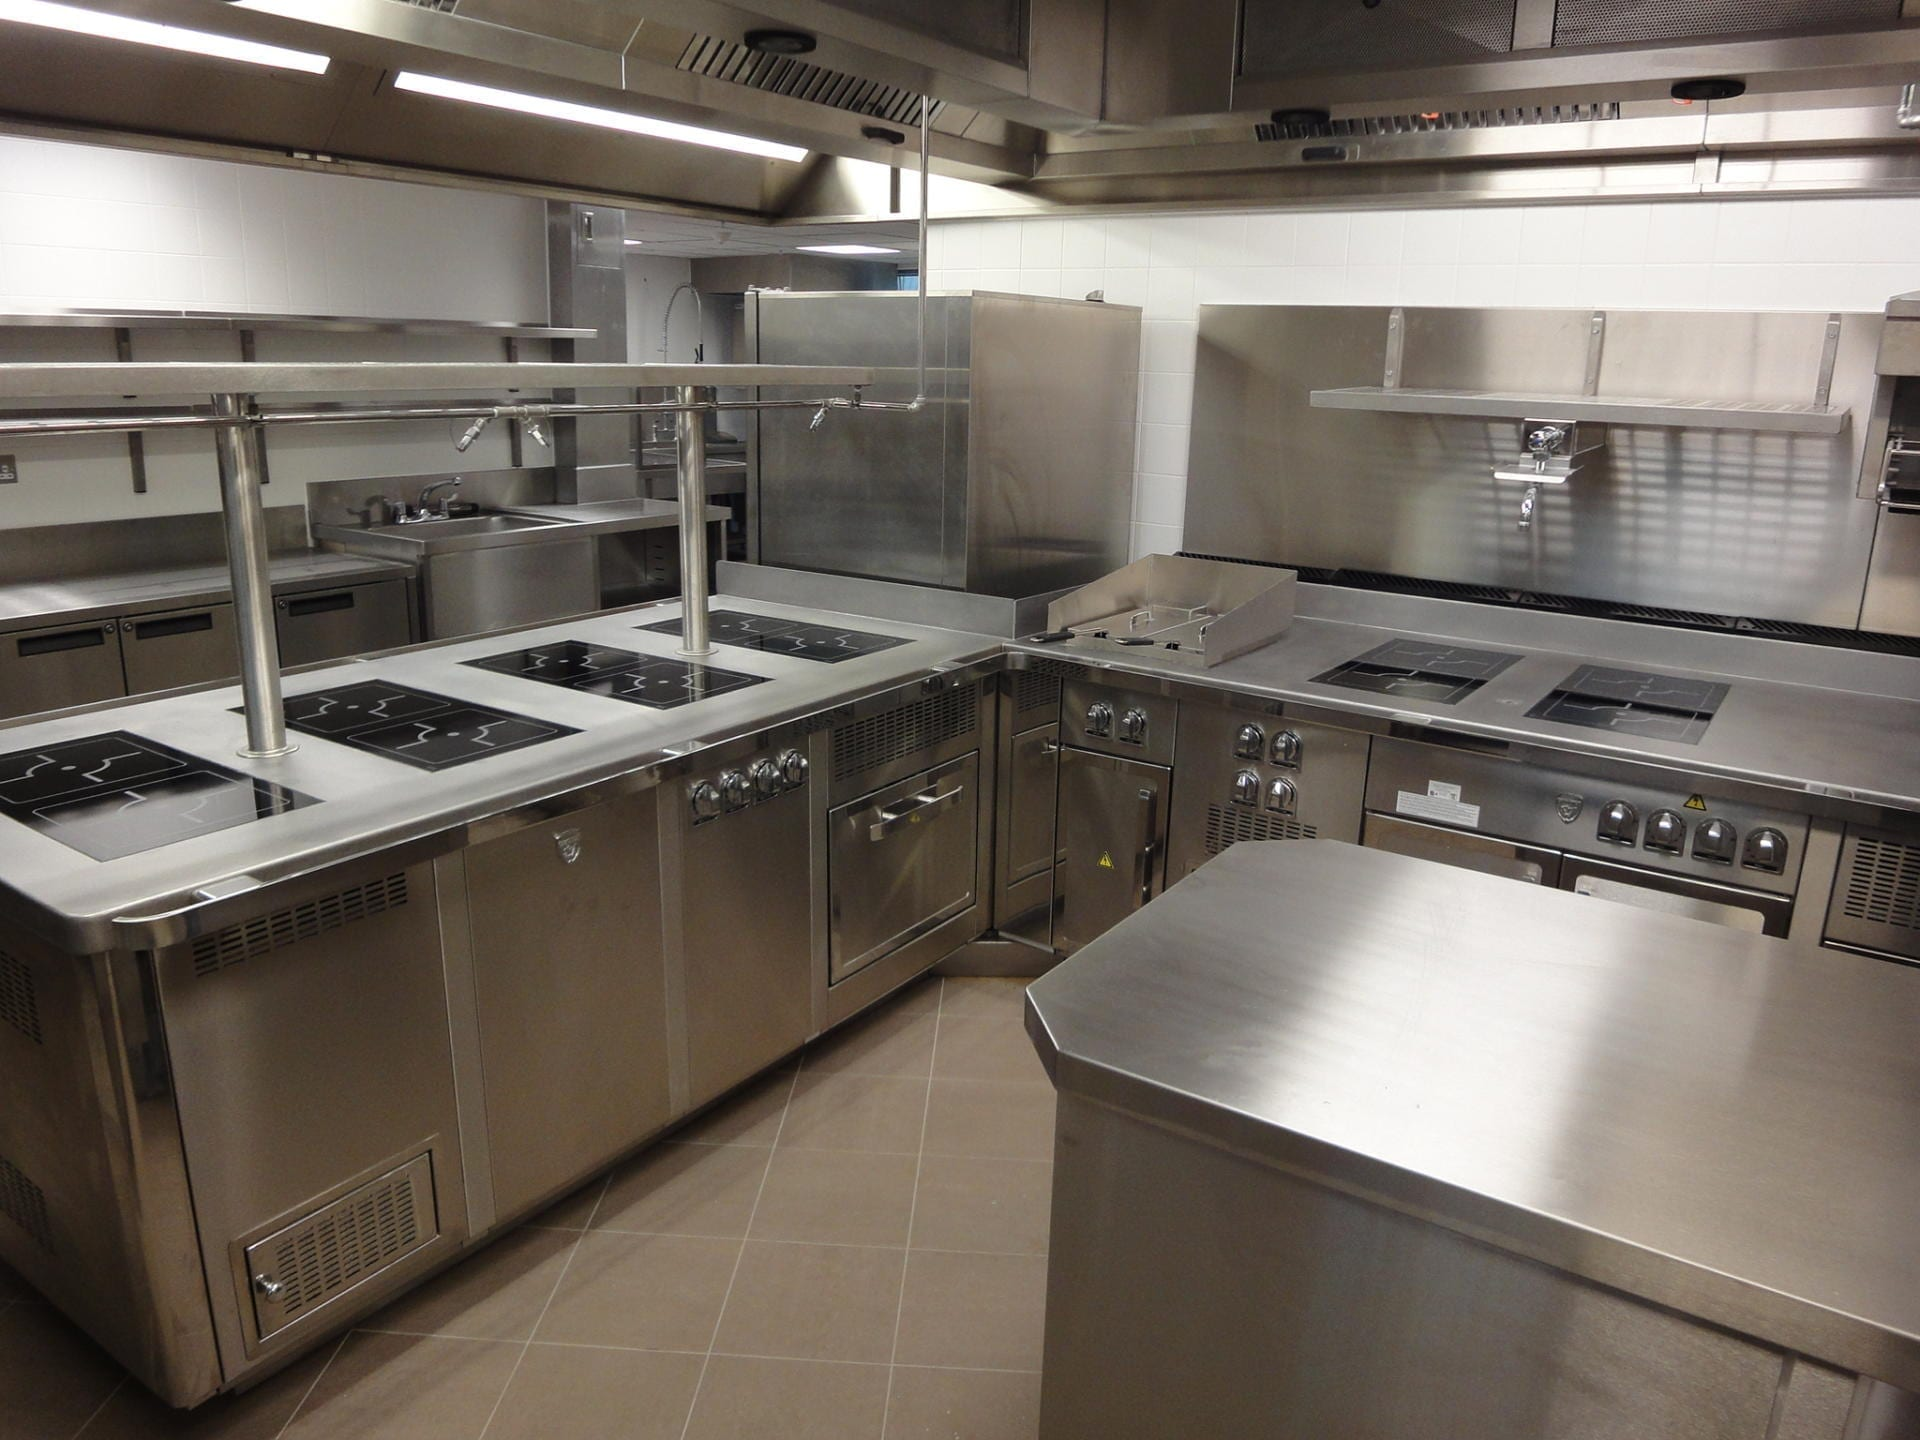 Hotel-Verta-Von-Essen-Battersea-Kitchen-Fabrication-Stainless-Steel-Commercial-spacecatering_7